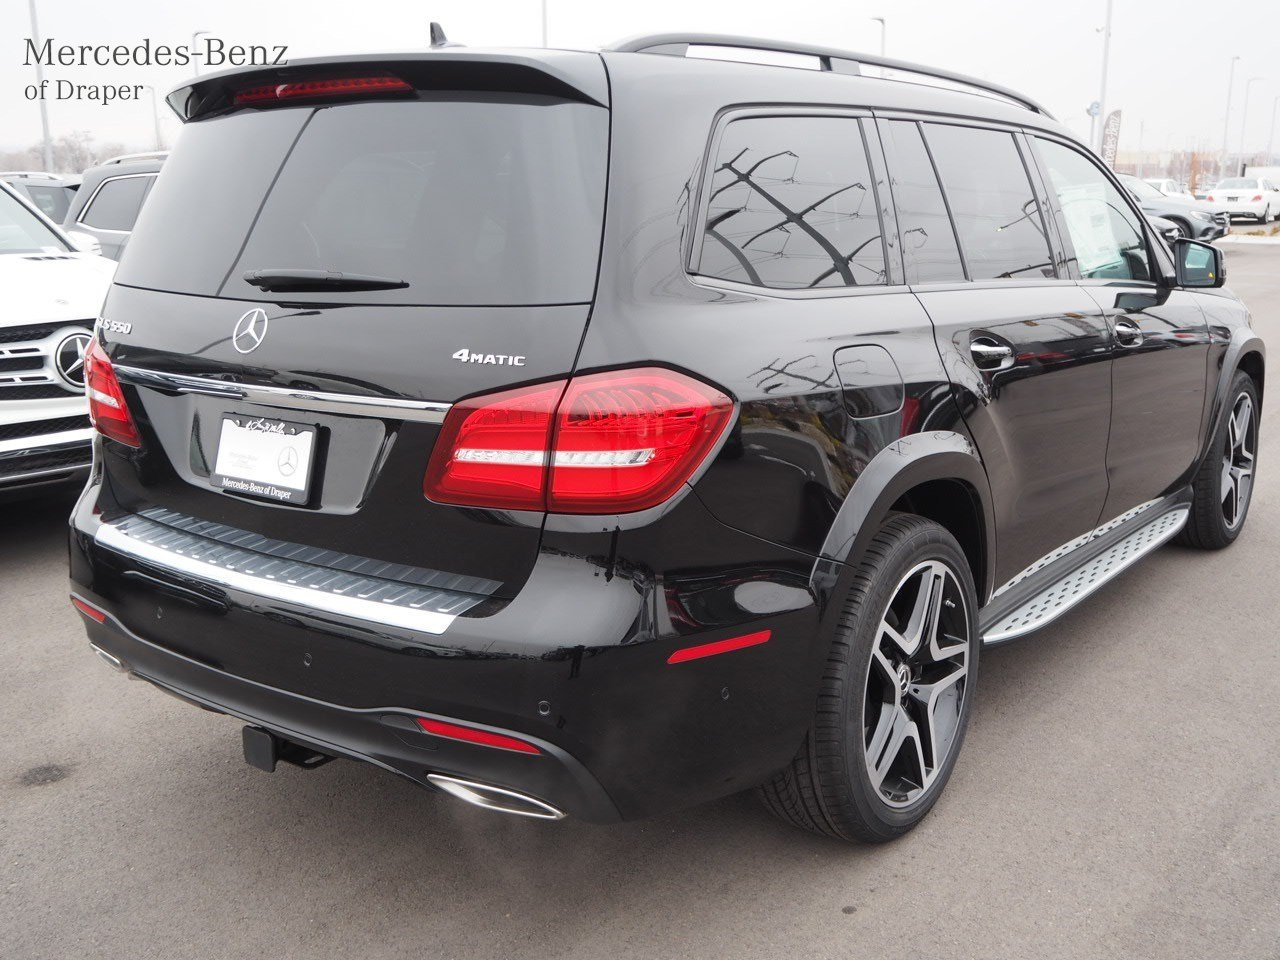 New 2019 Mercedes-Benz GLS GLS 550 SUV in Draper #KB224602 ...